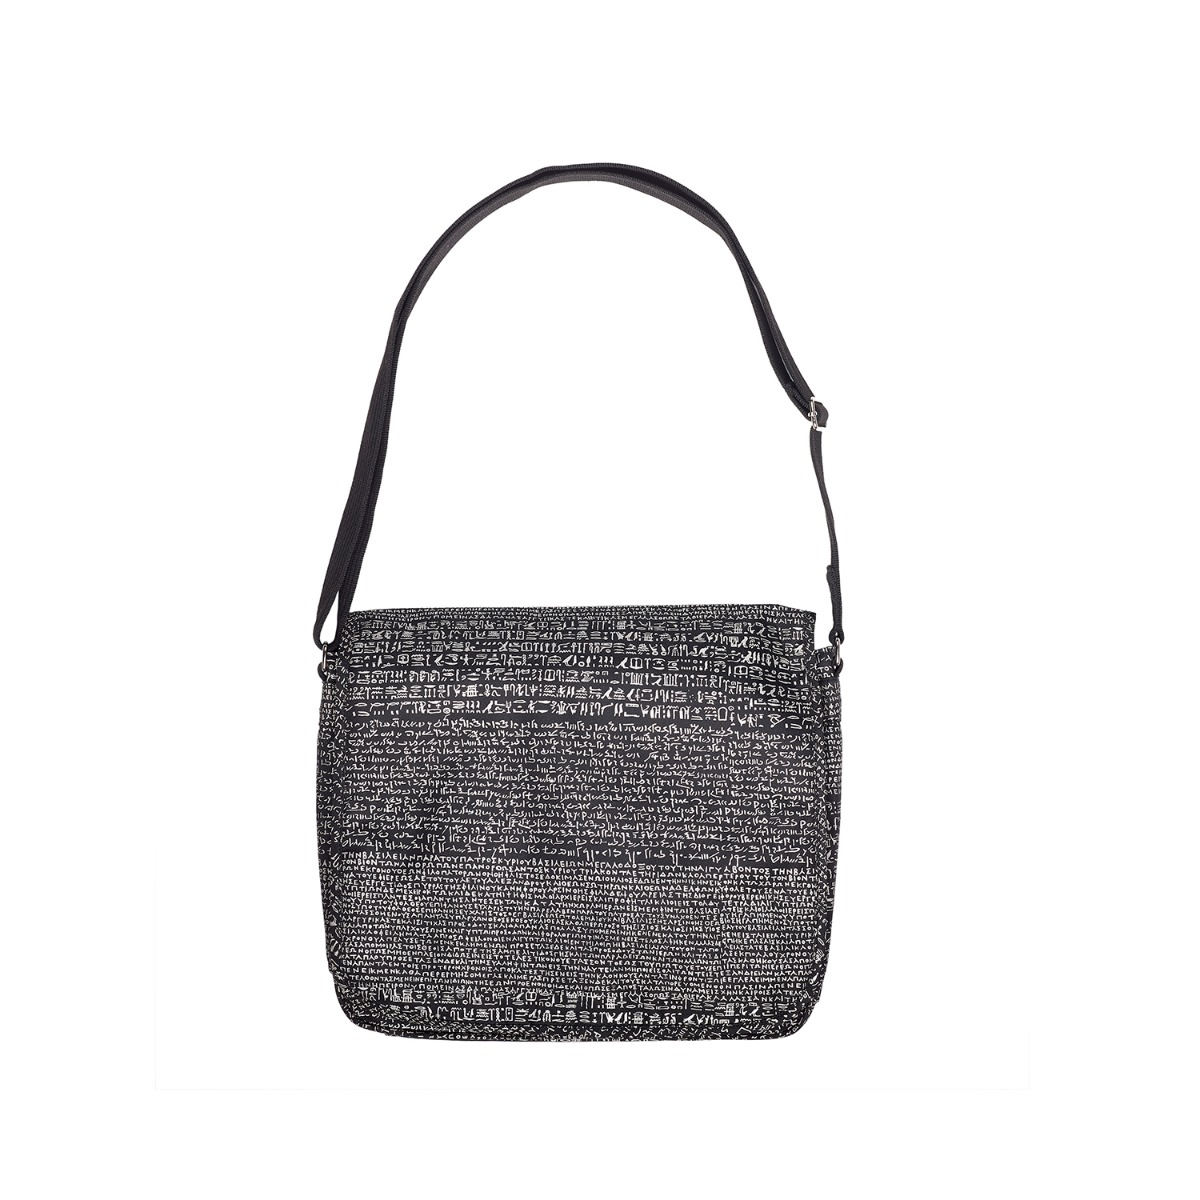 Rosetta Stone messenger bag